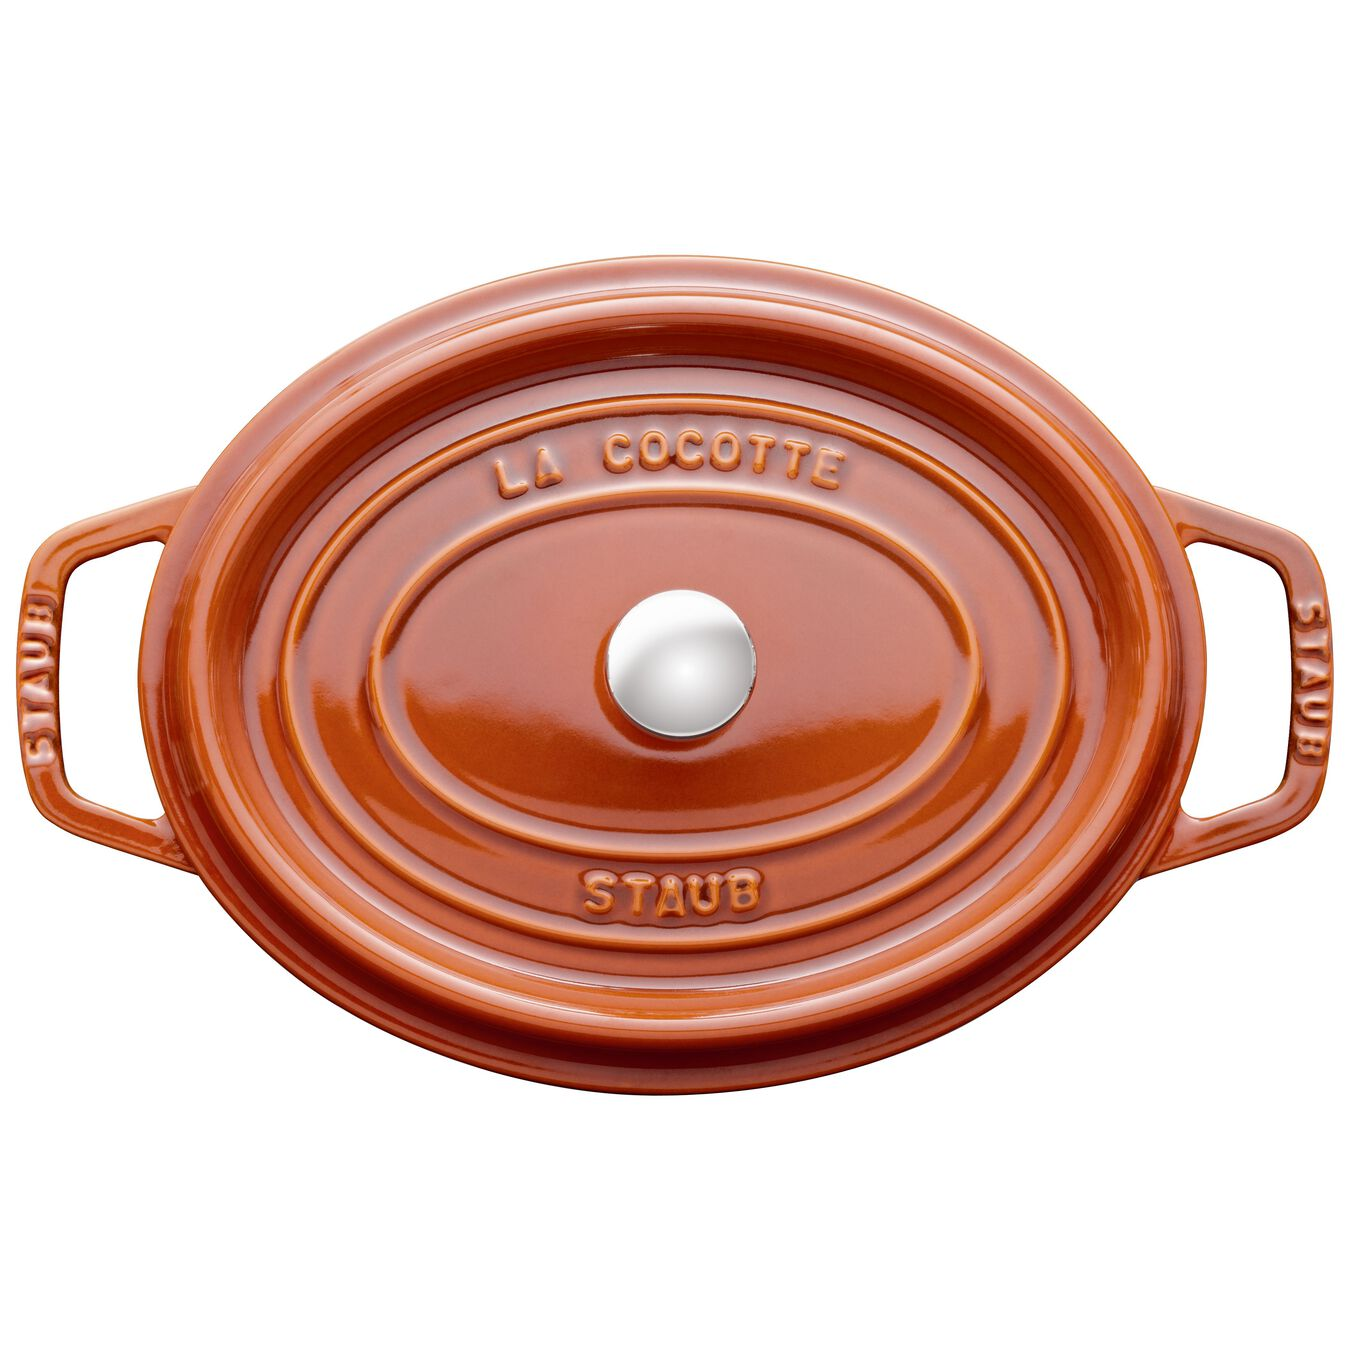 Cocotte ovale - 31 cm, cannella,,large 2